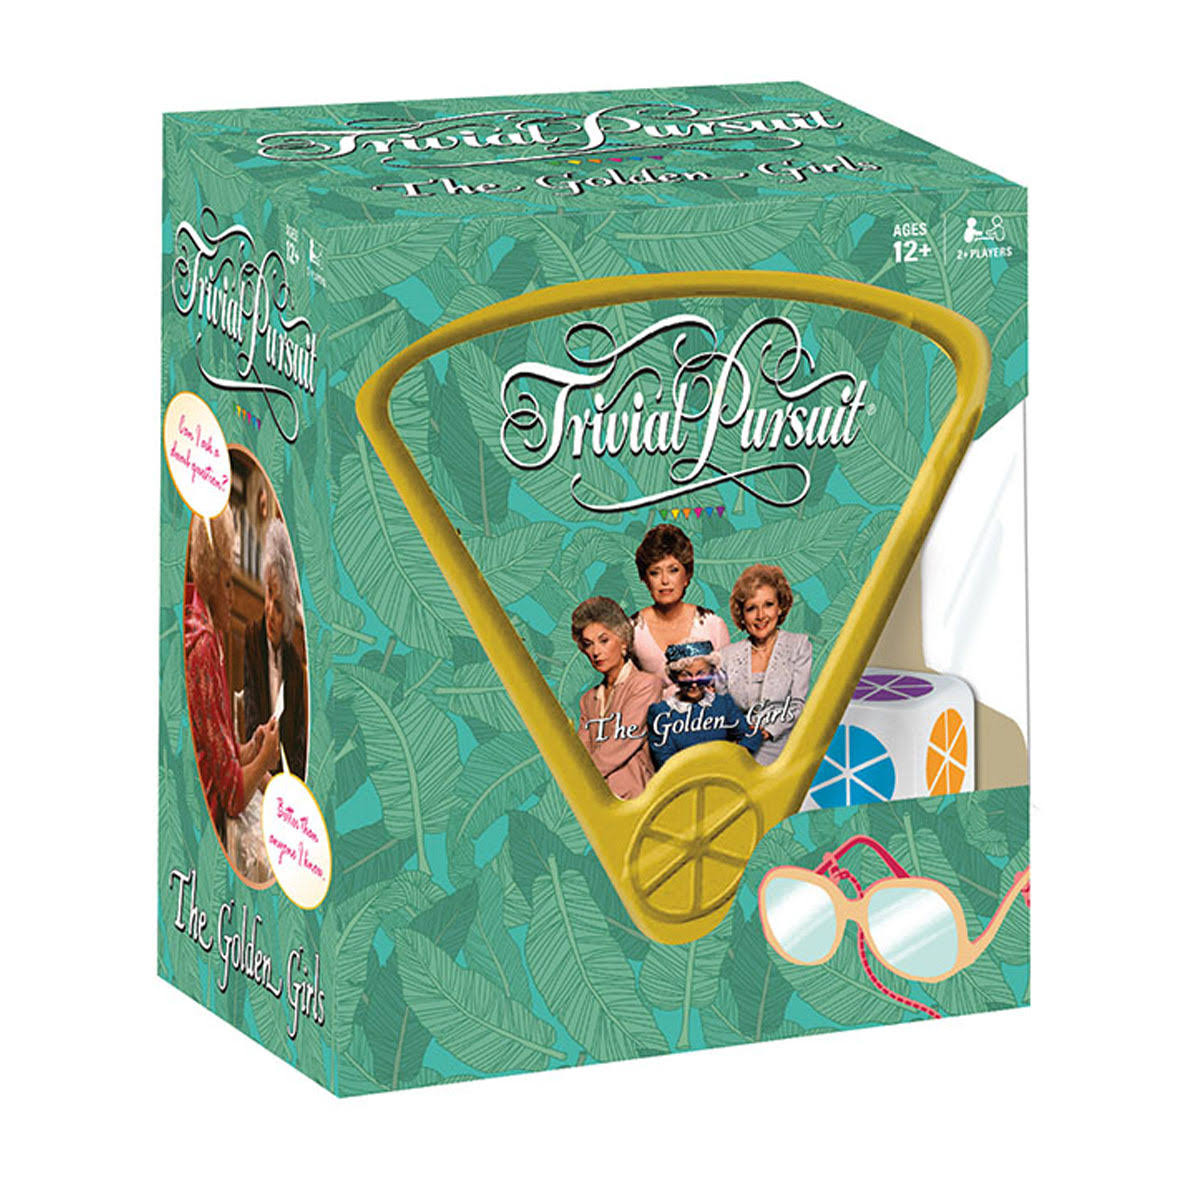 USAopoly Trivial Pursuit: The Golden Girls